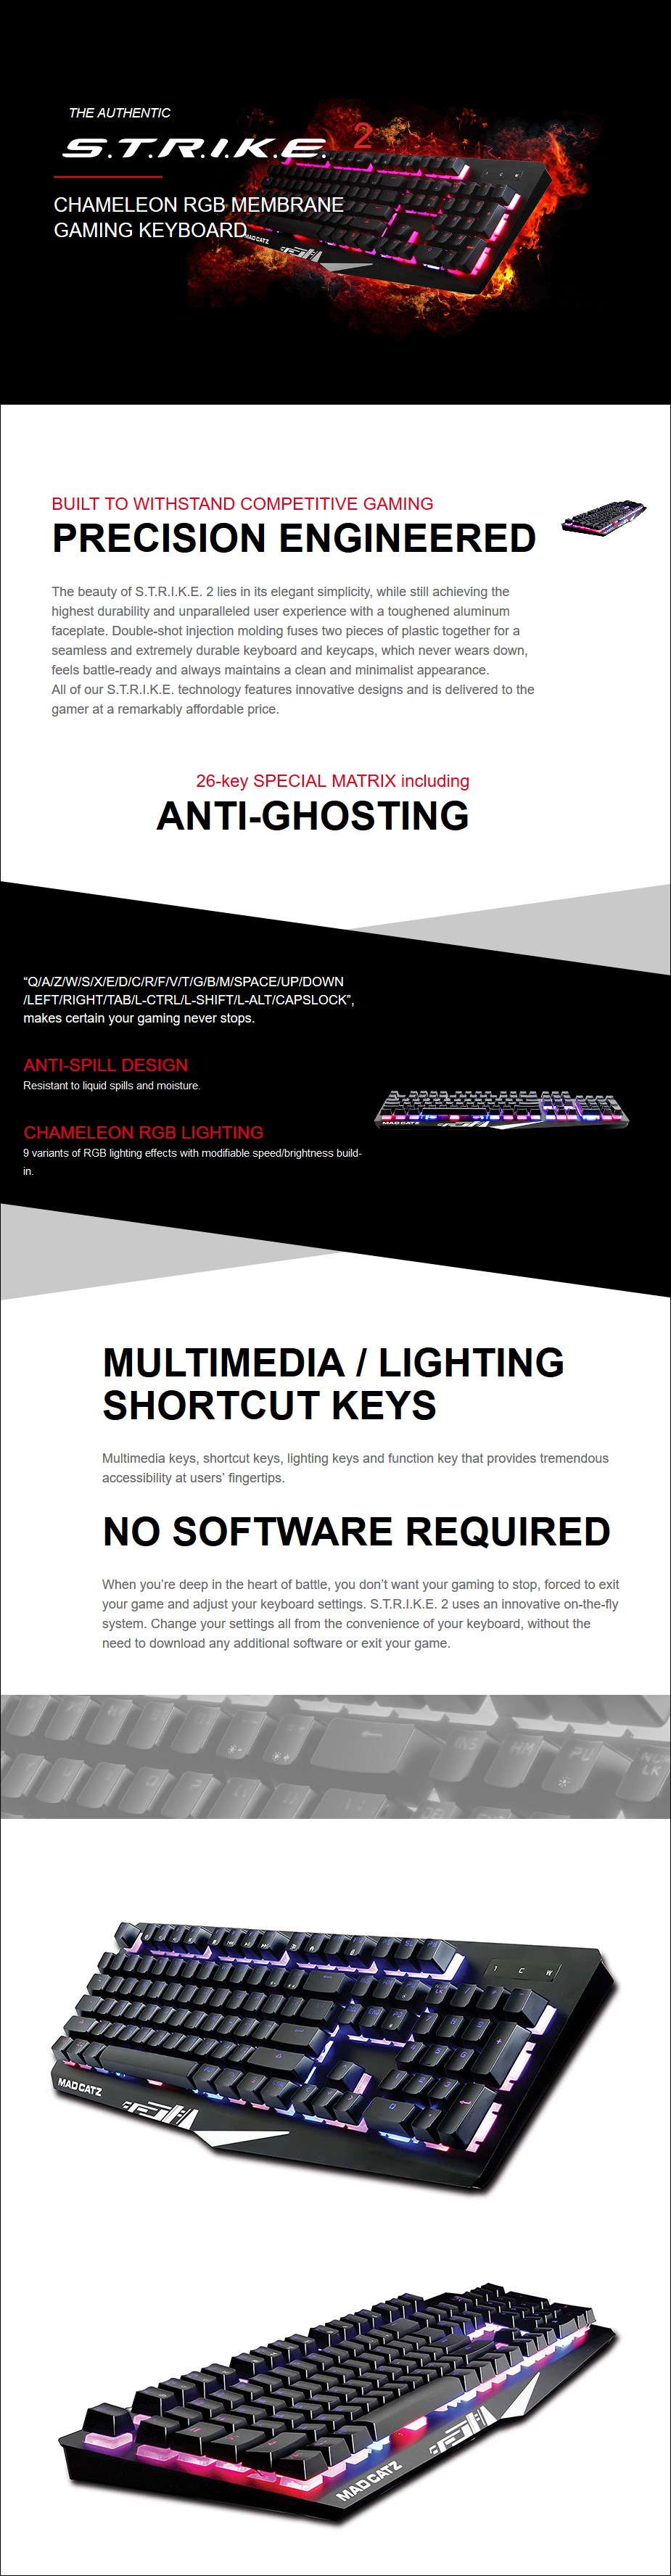 A large marketing image providing additional information about the product Mad Catz S.T.R.I.K.E 2 Gaming Keyboard Black - Additional alt info not provided